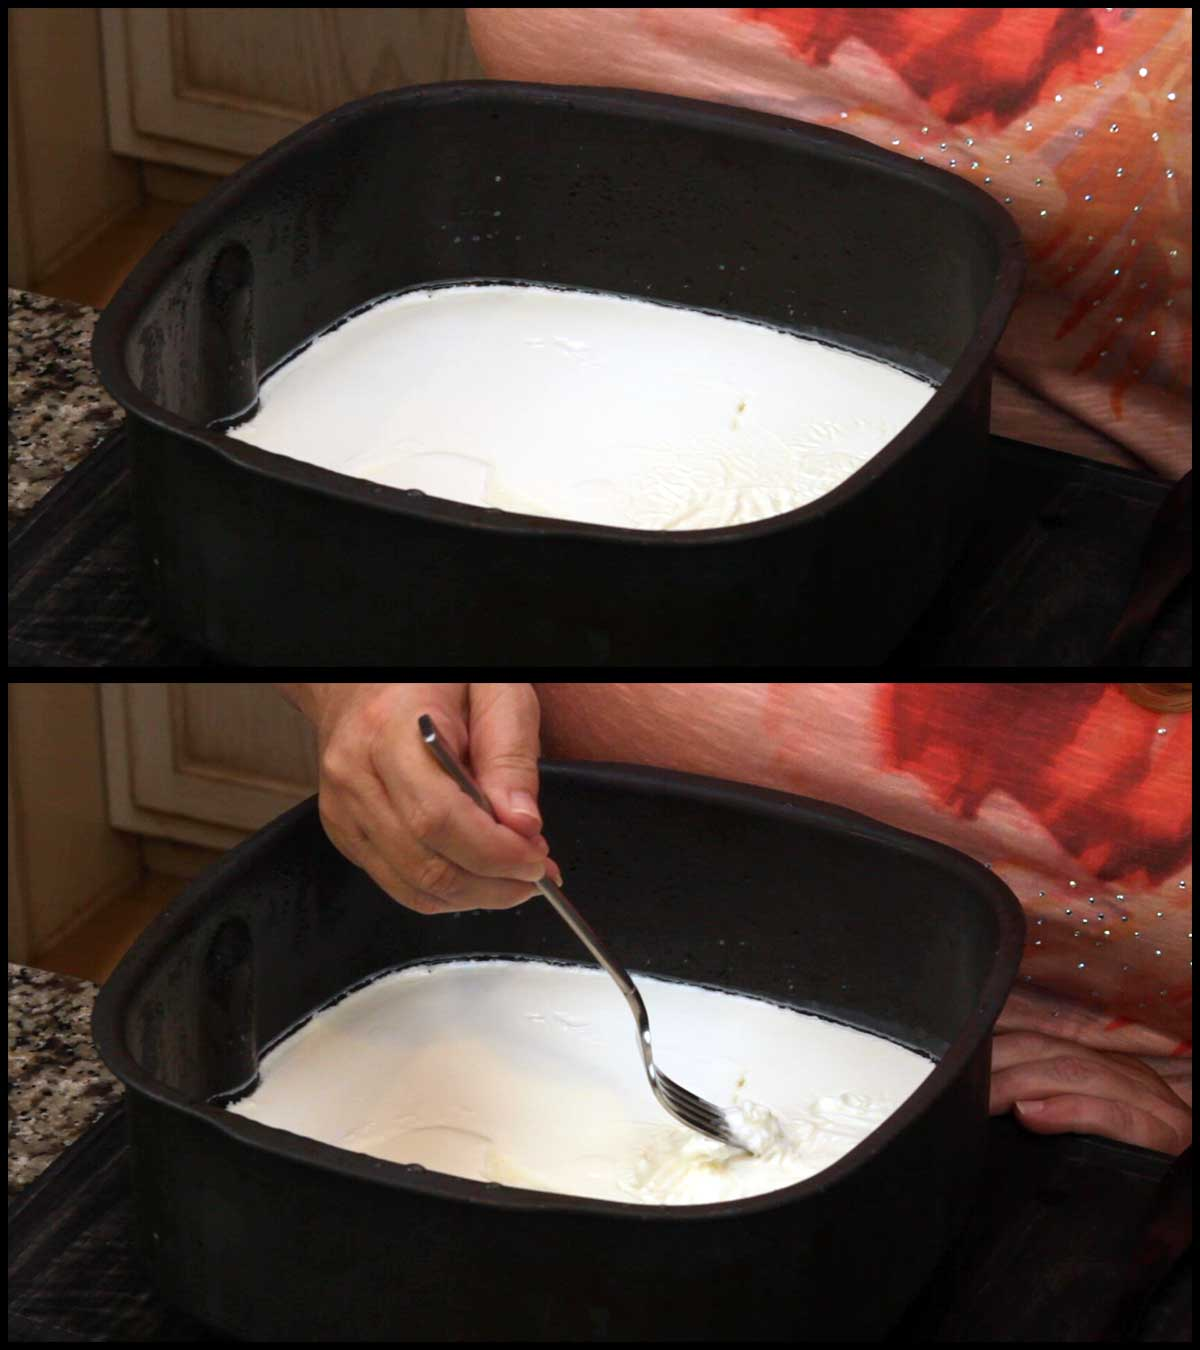 removing the skin from the yogurt